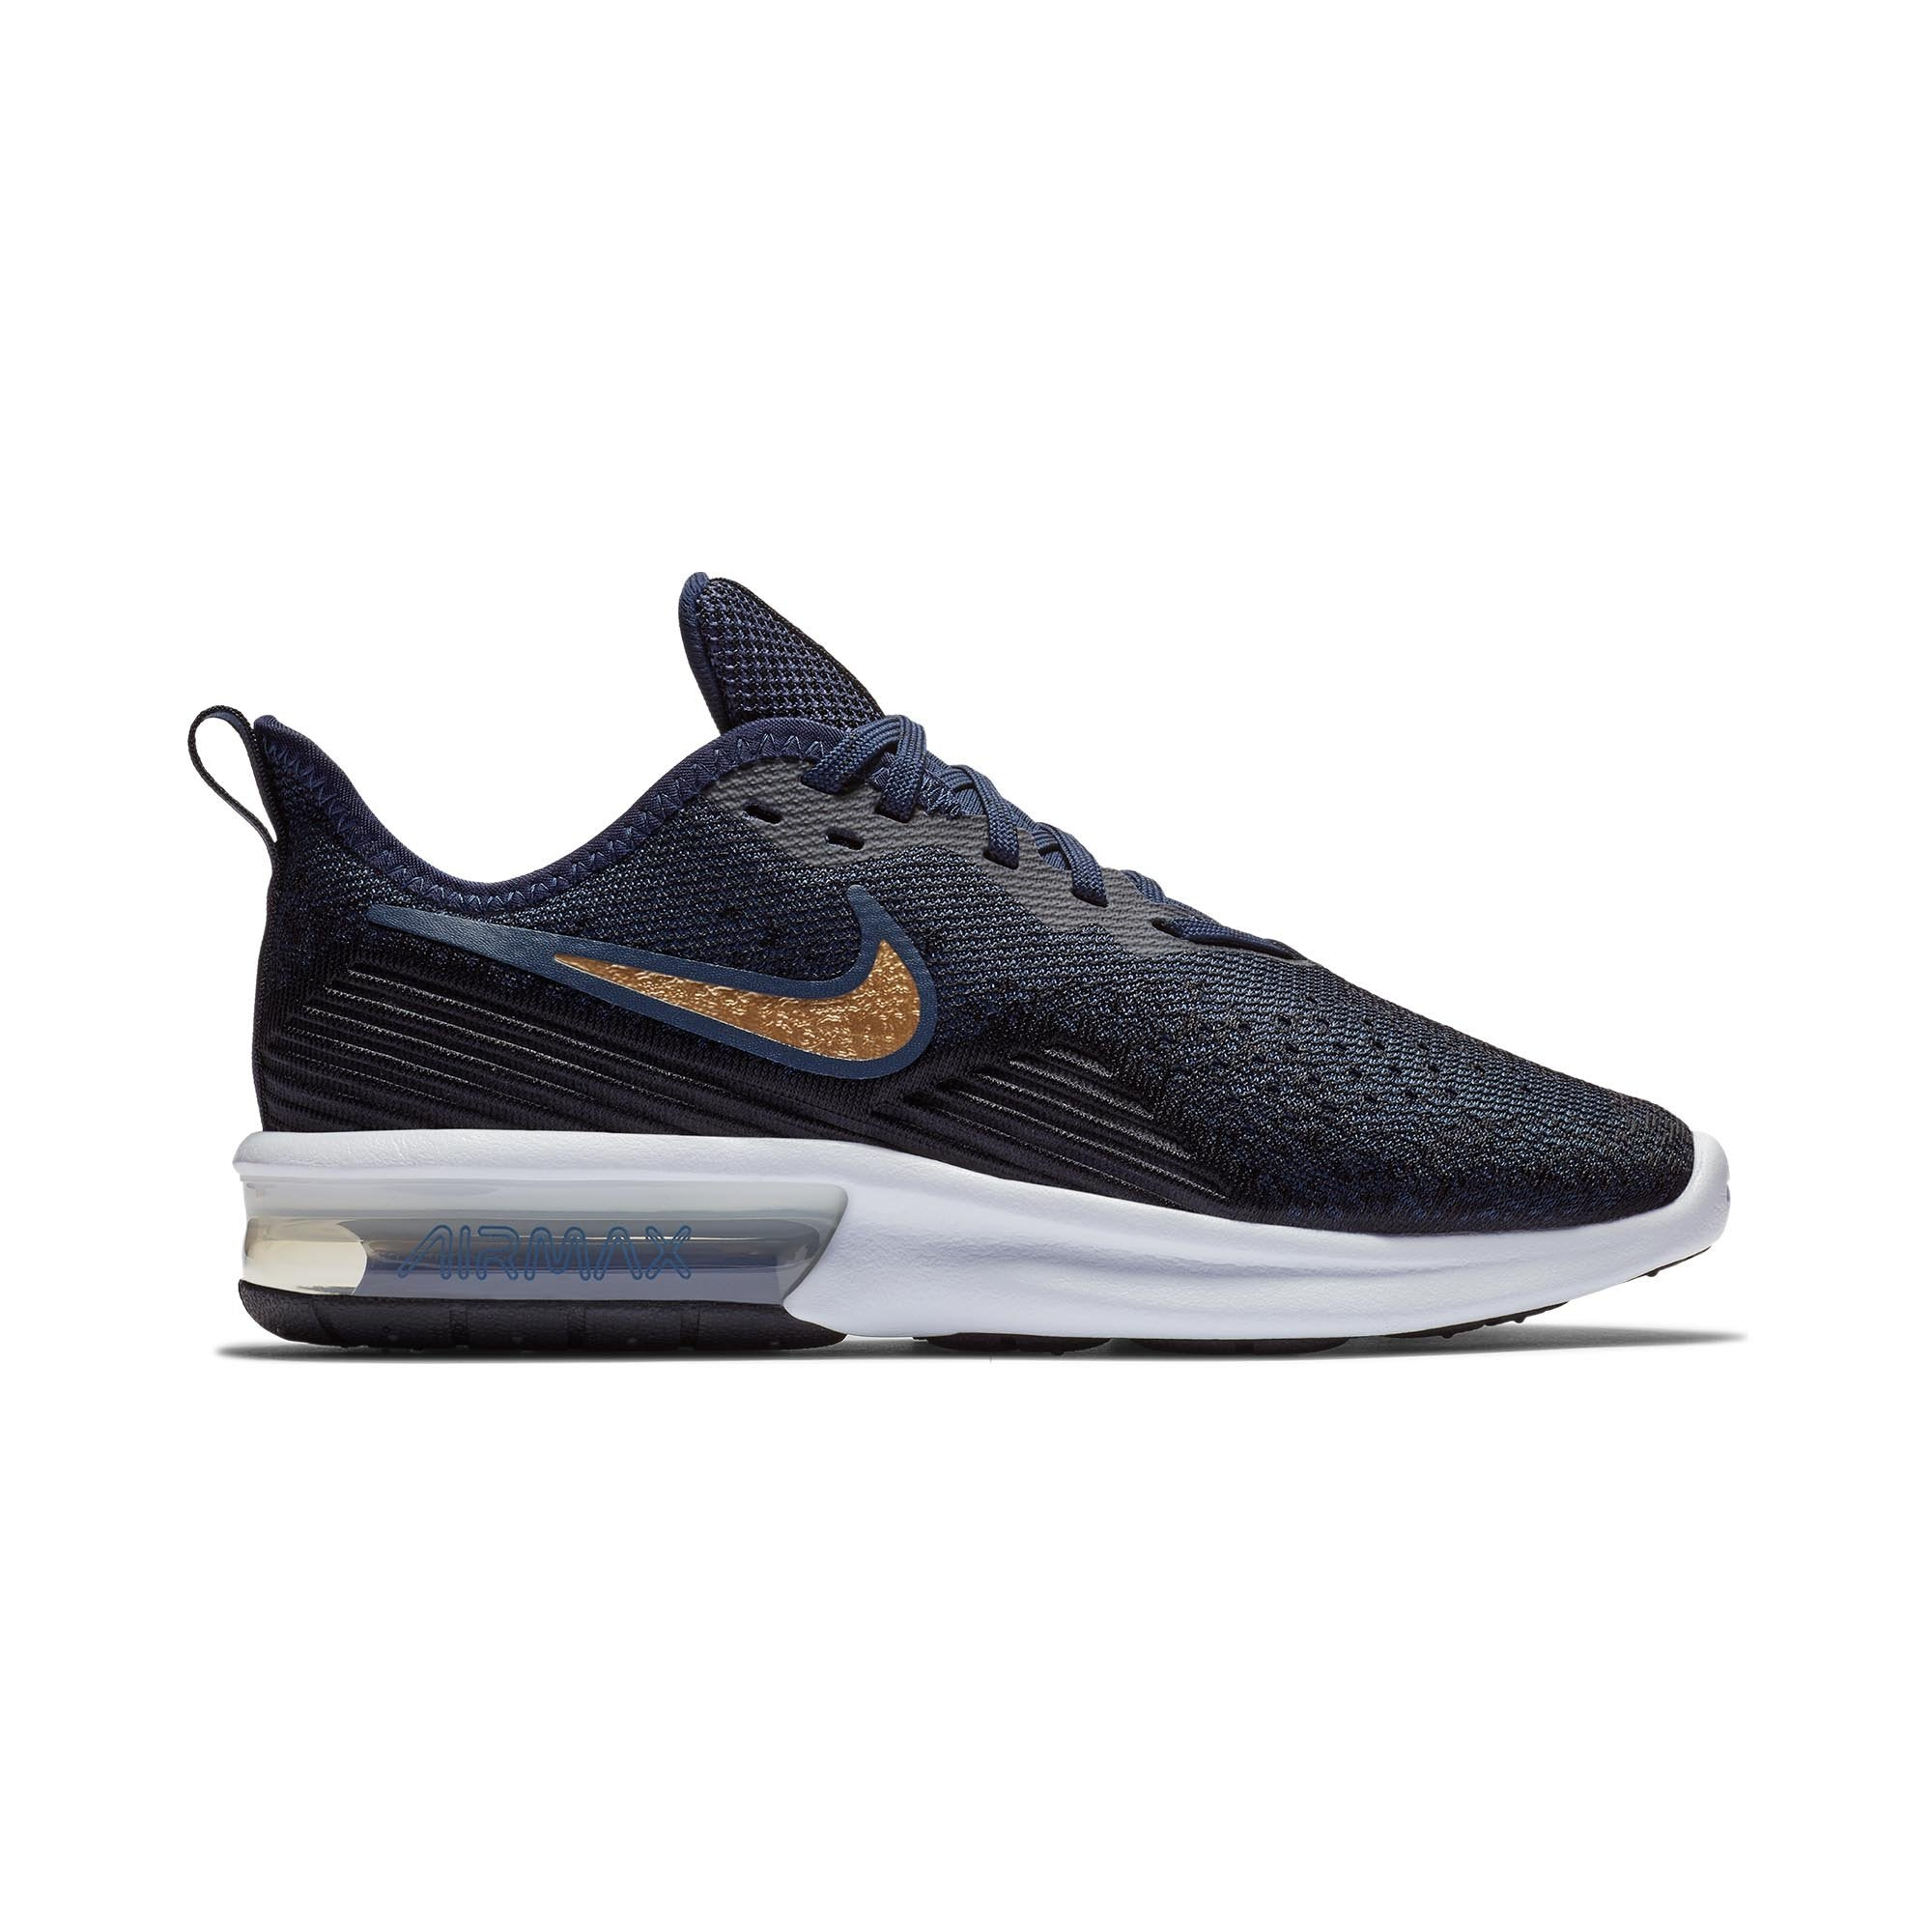 3e13171c79 Buy Nike Women Air Max Sequent 4 Running Shoes, Black/Metallic  Gold/Obsidian/White Online in Singapore | Royal Sporting House